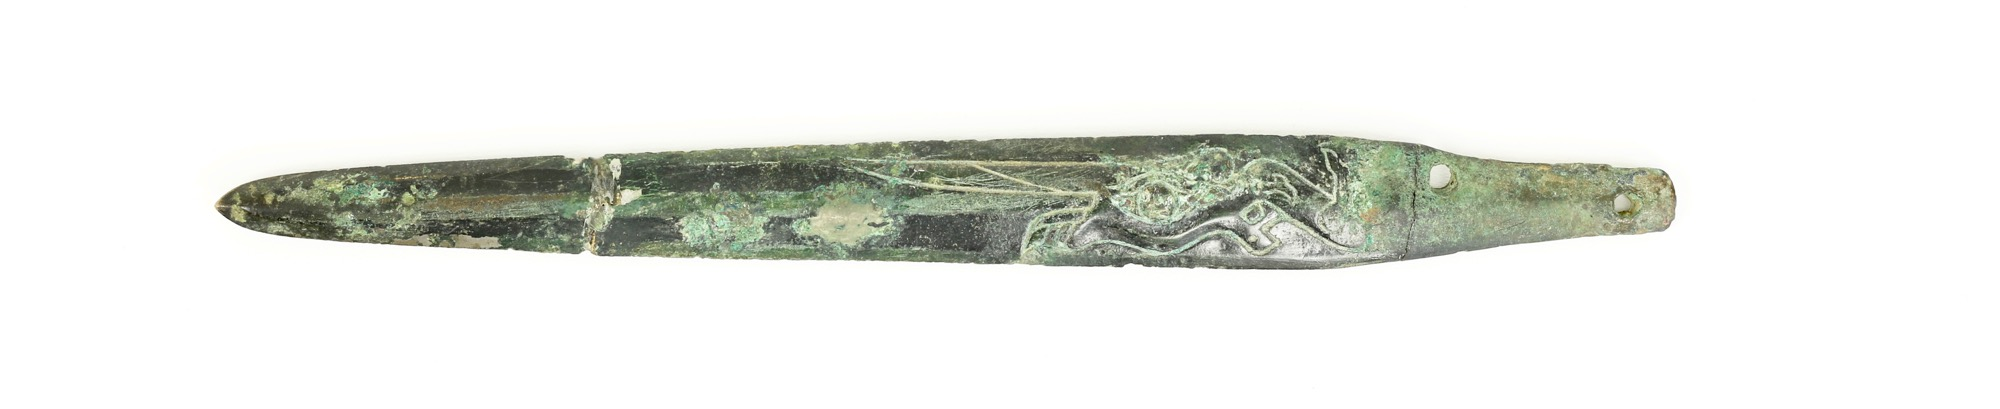 An ancient bronze dagger from the BaShu culture